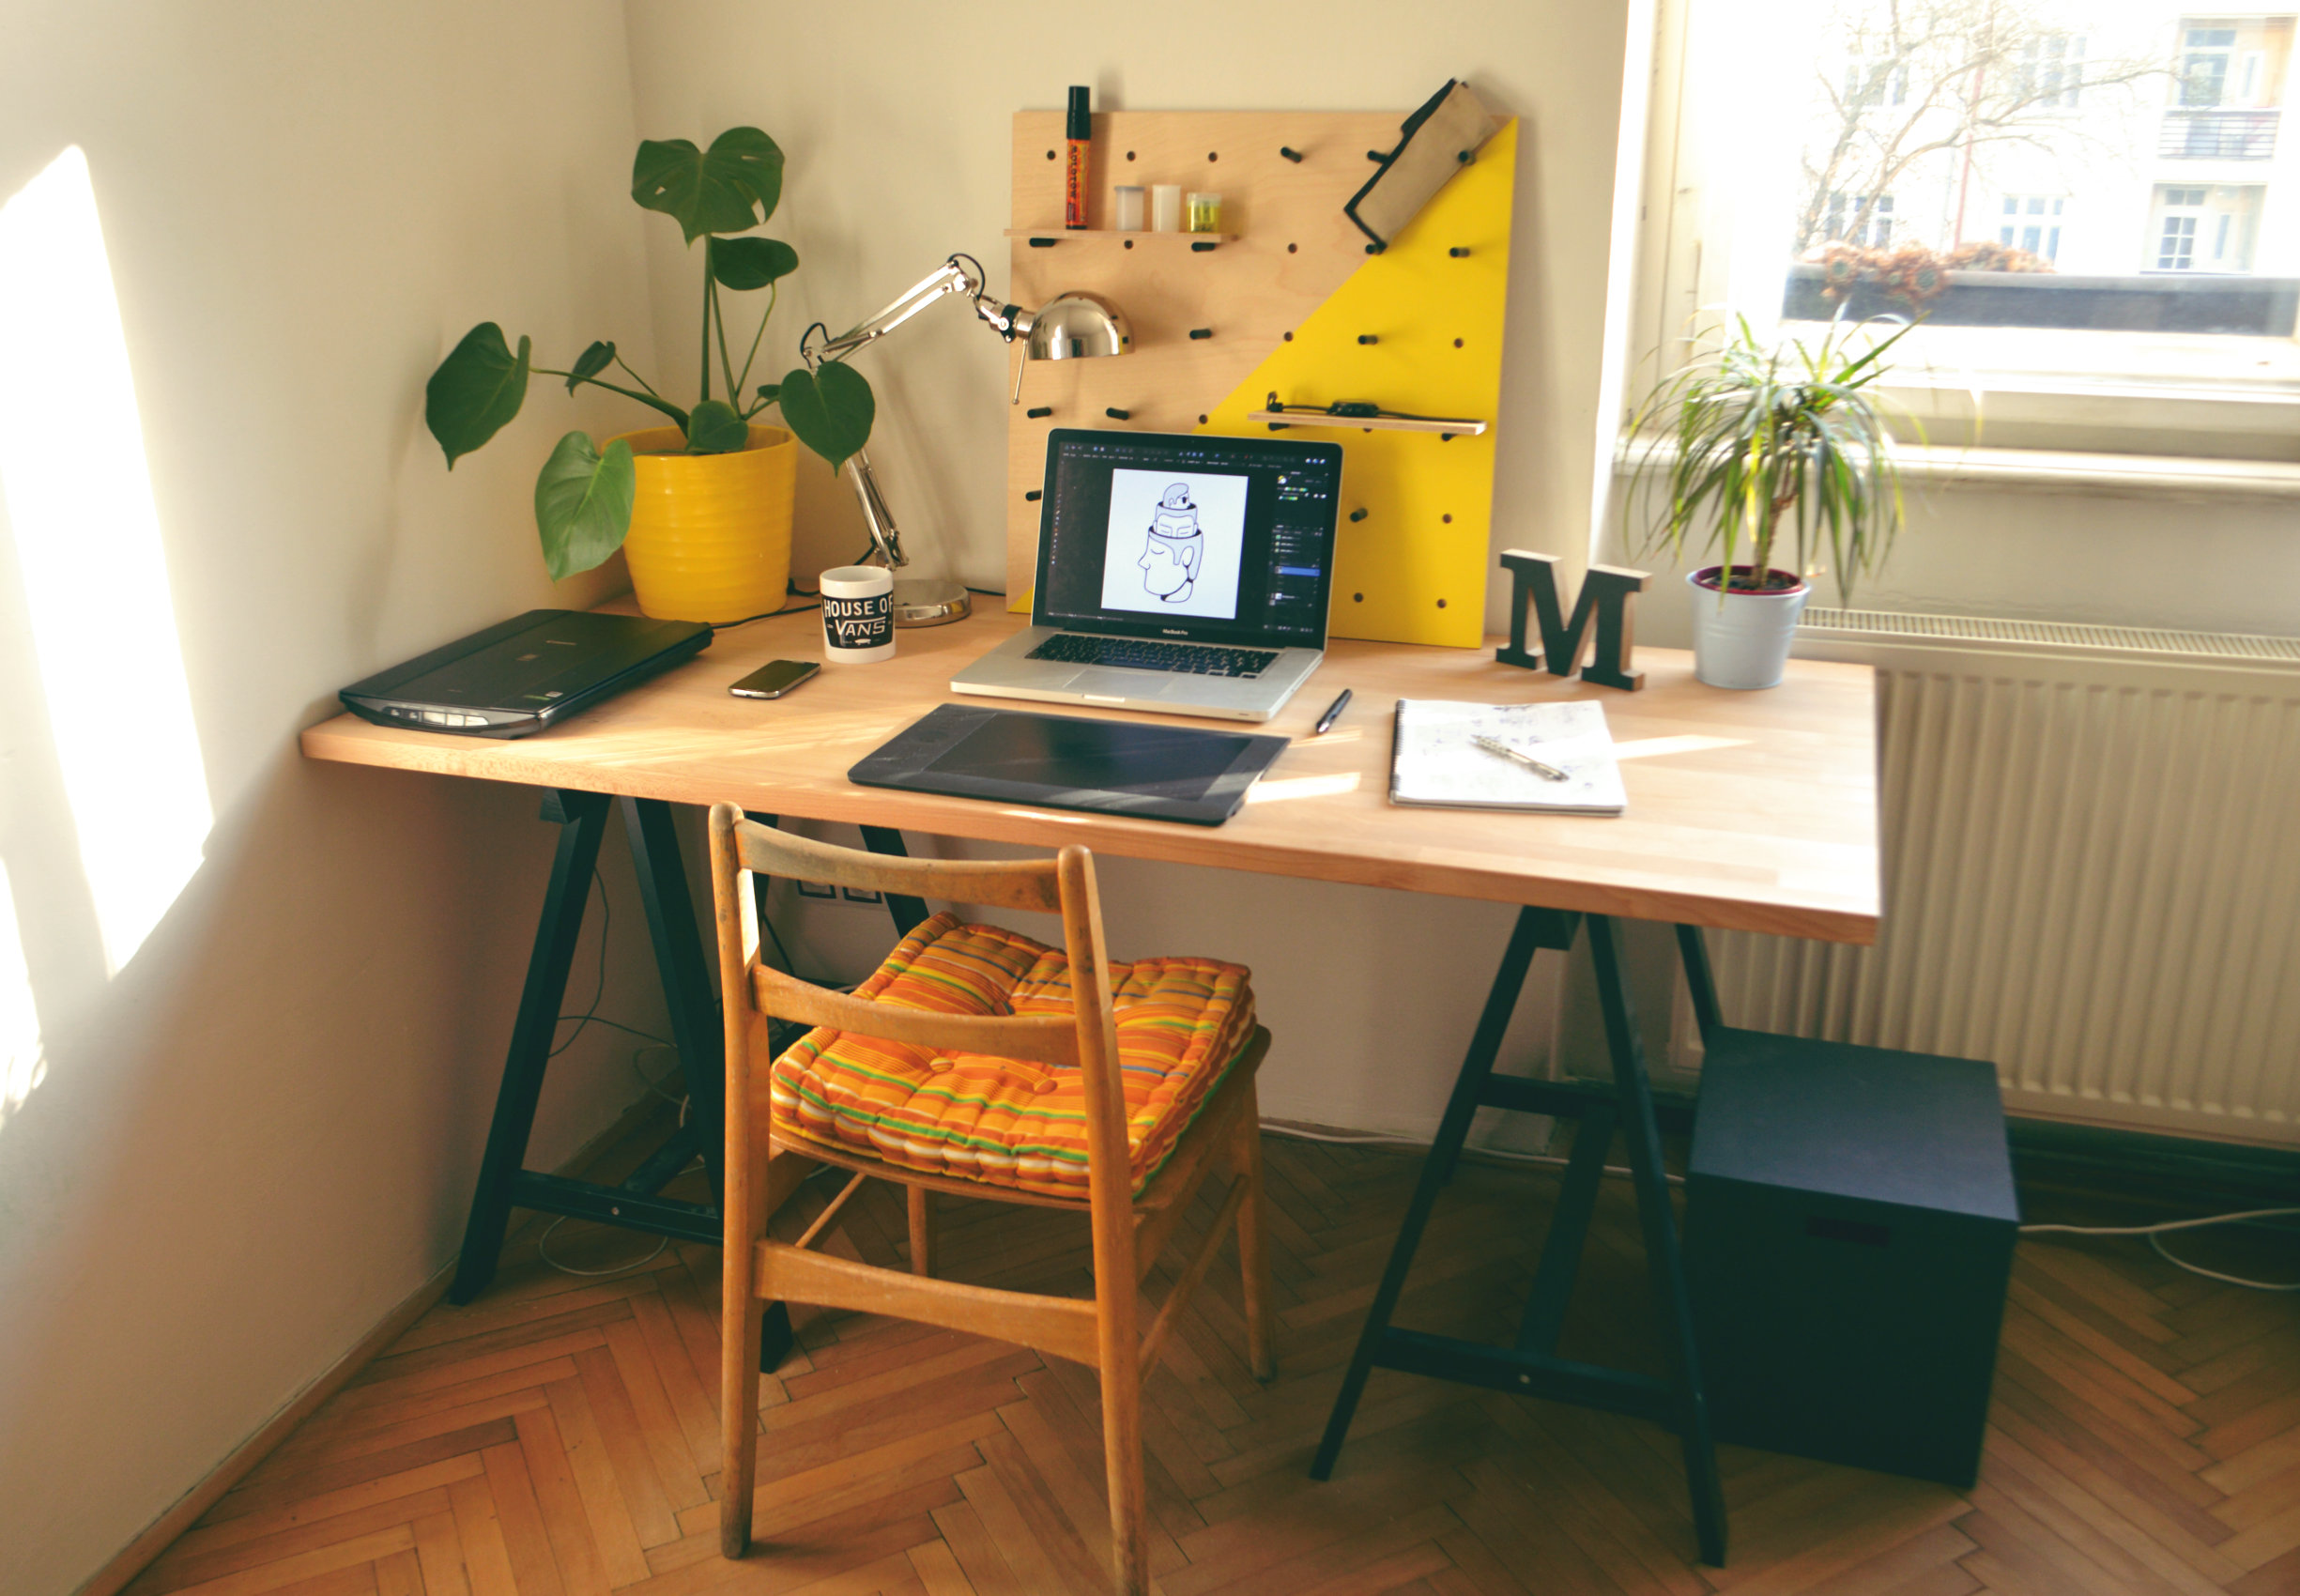 An illustrator's working desk